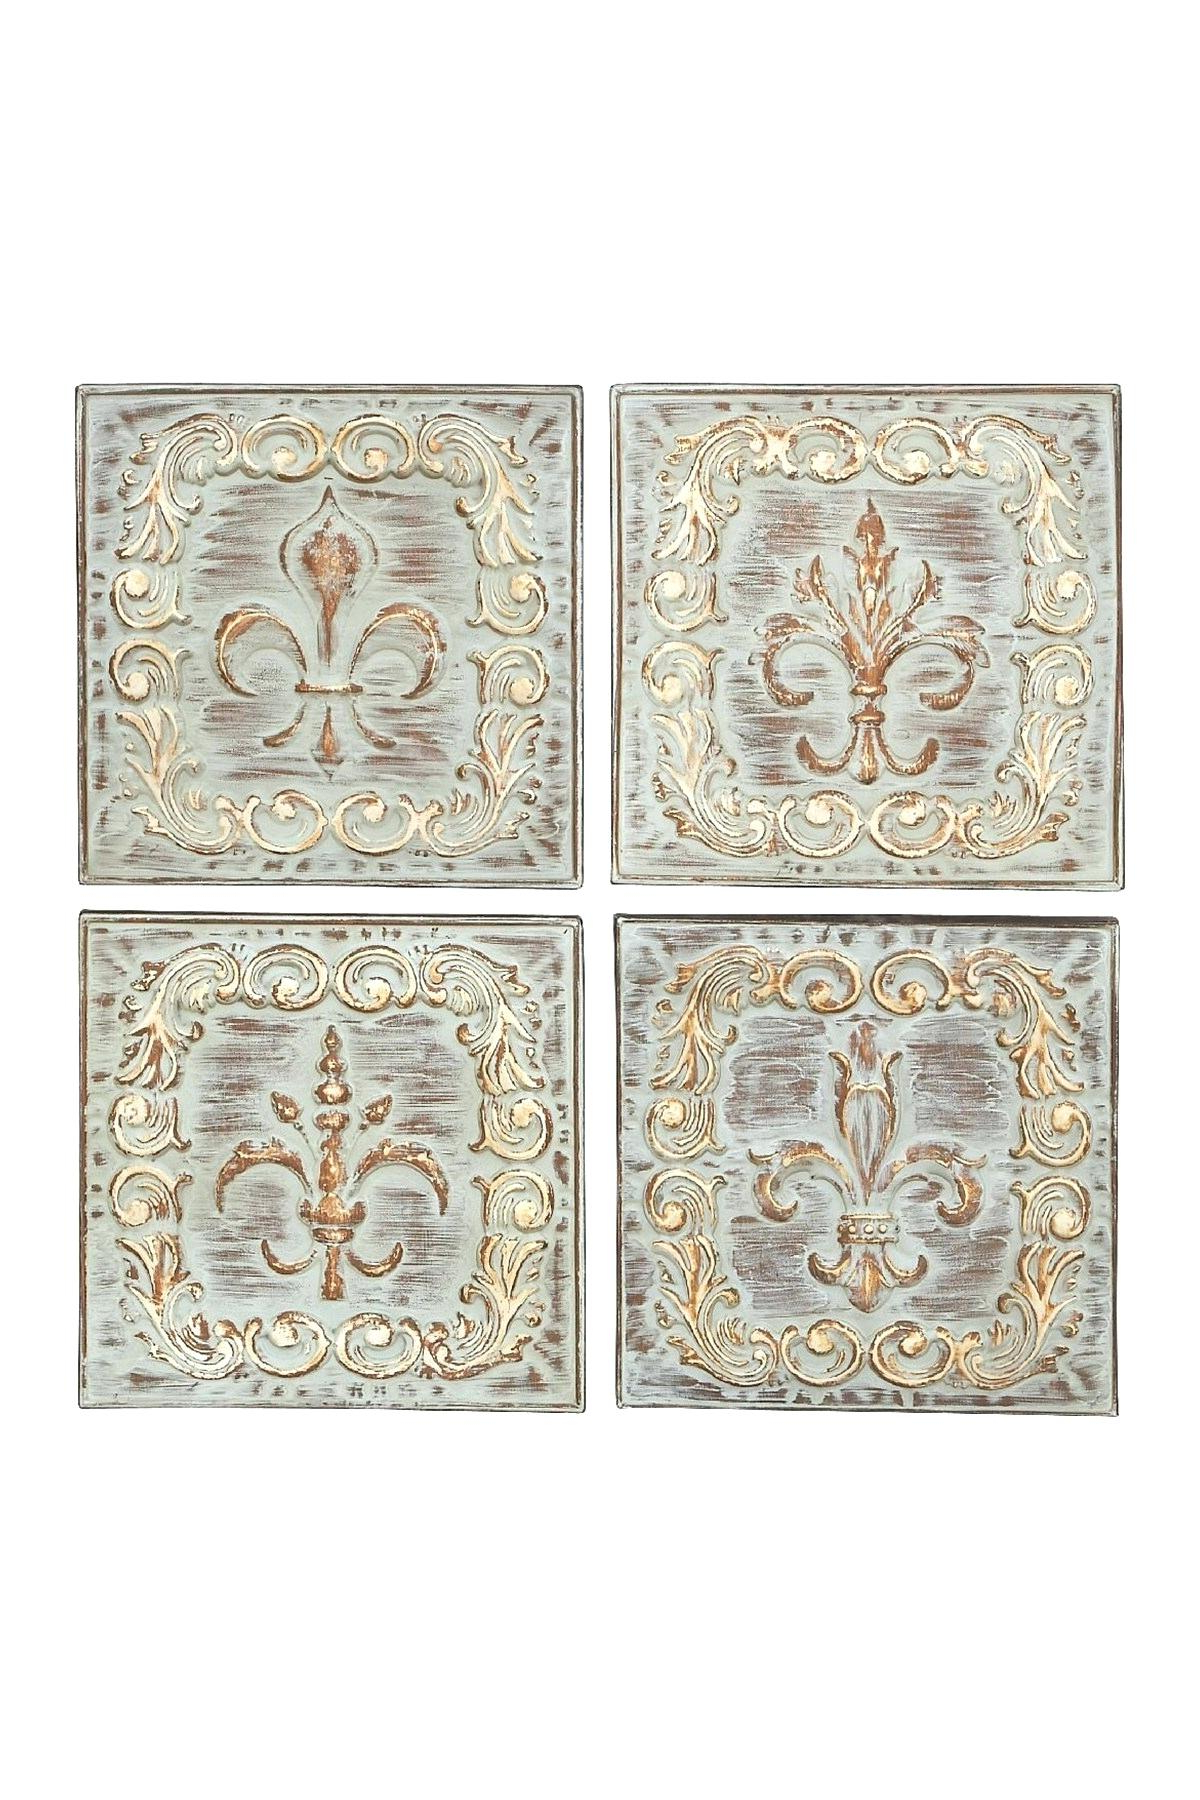 Popular 4 Piece Metal Wall Decor Sets Regarding Metal Wall Decor Set Full Size Of Modern Patio Wall Decor Sets Smart (View 13 of 20)